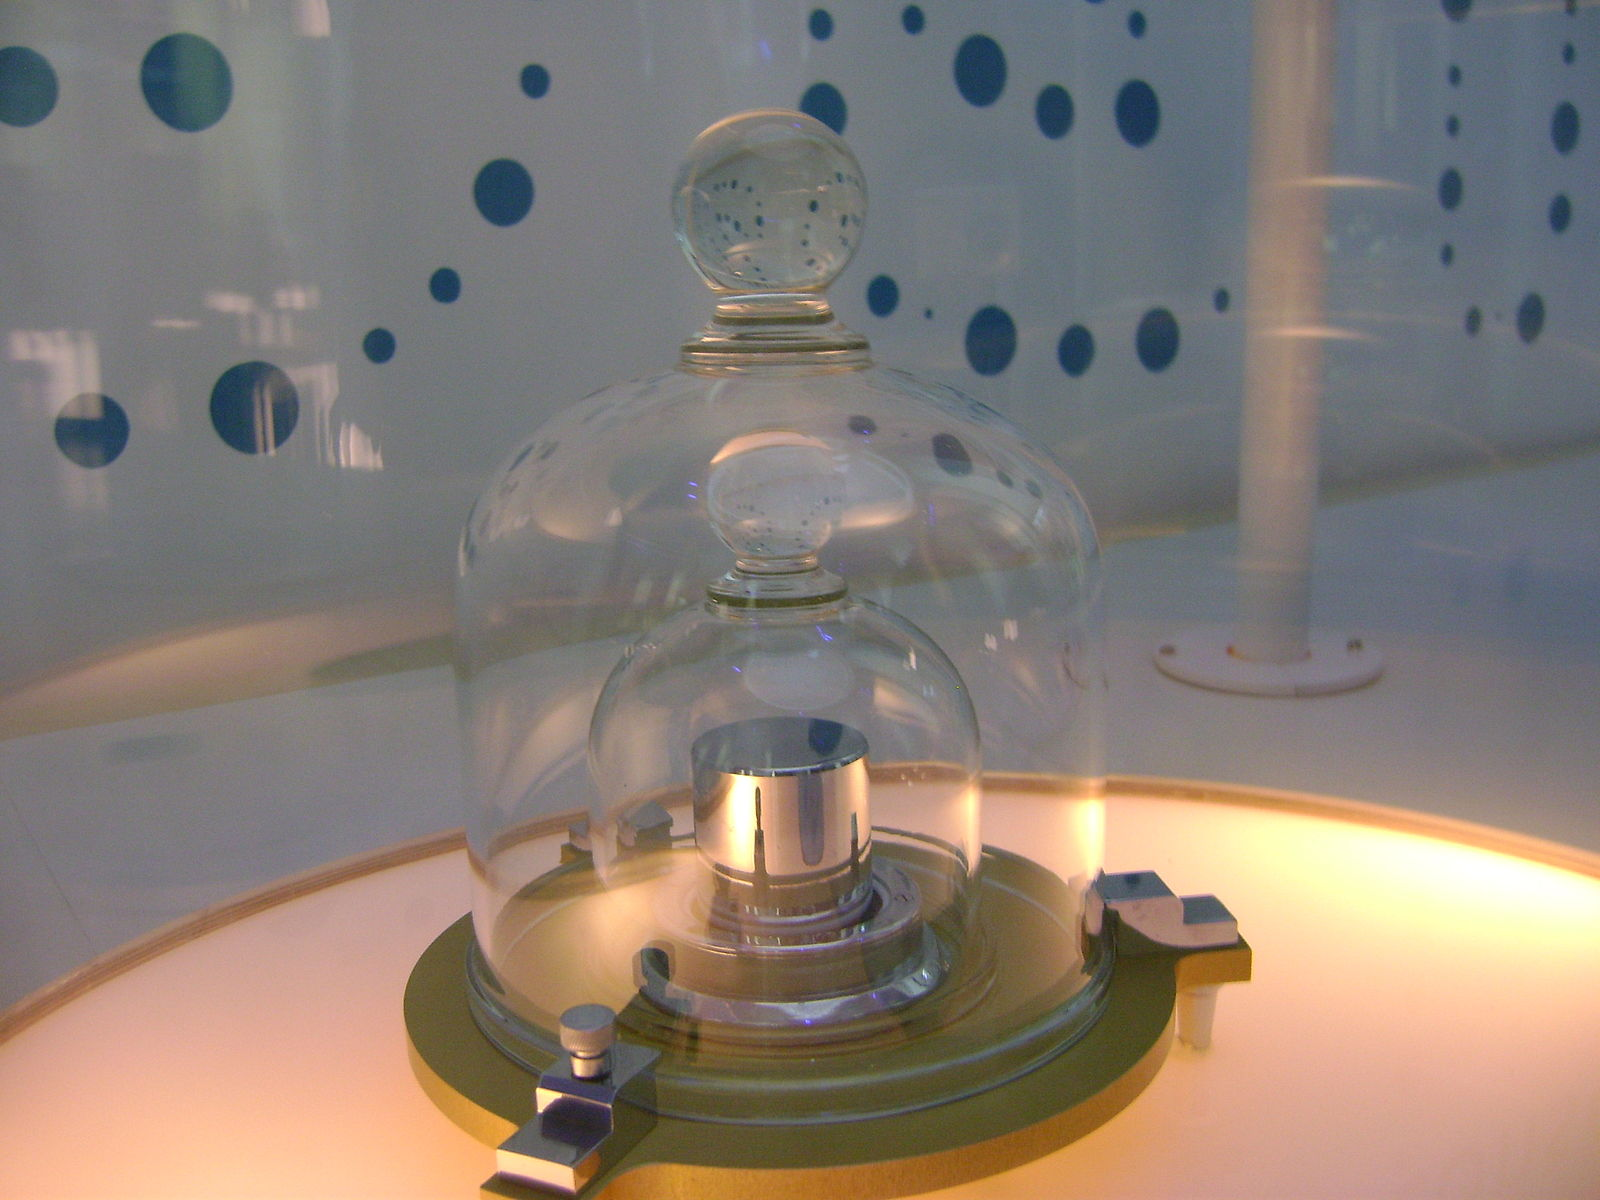 MASSive News – The Kilogram has been Redefined!